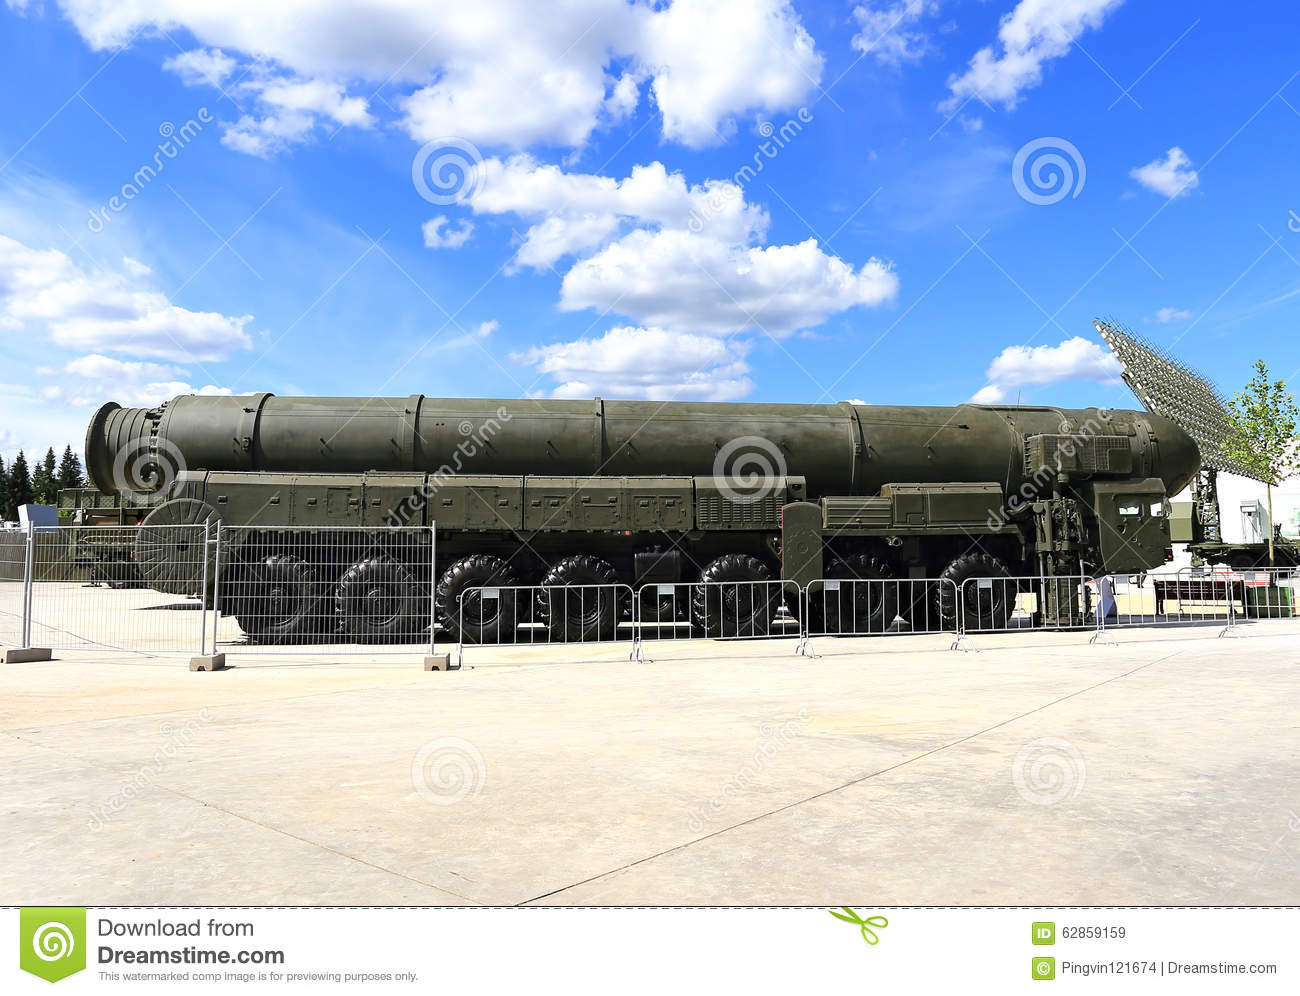 Intercontinental Ballistic Missile Stock Image - Image of